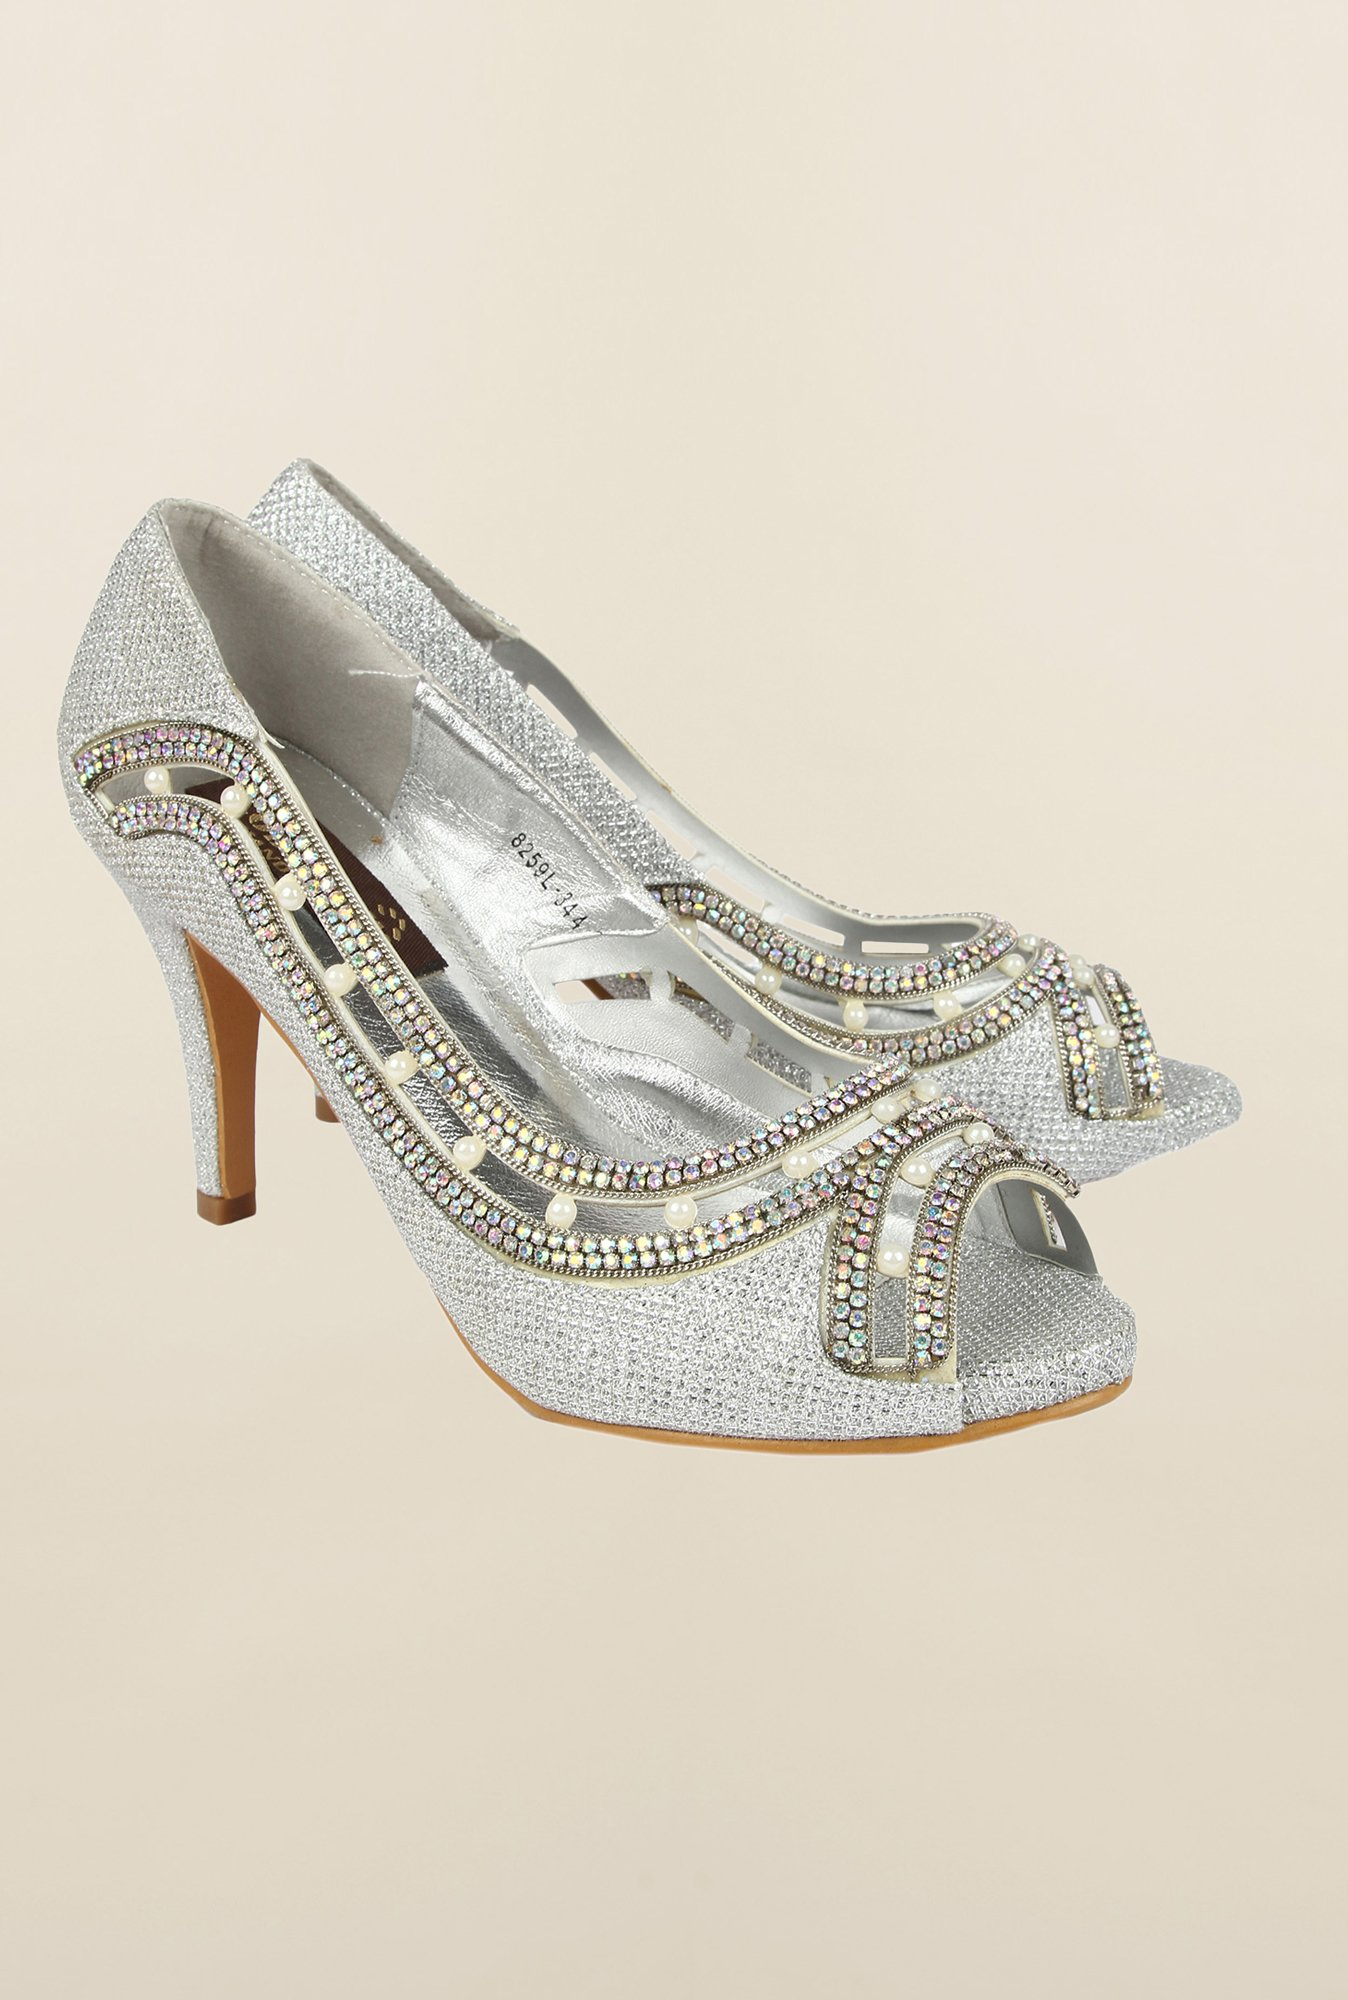 Cobblerz Silver Peep Toe Sandals